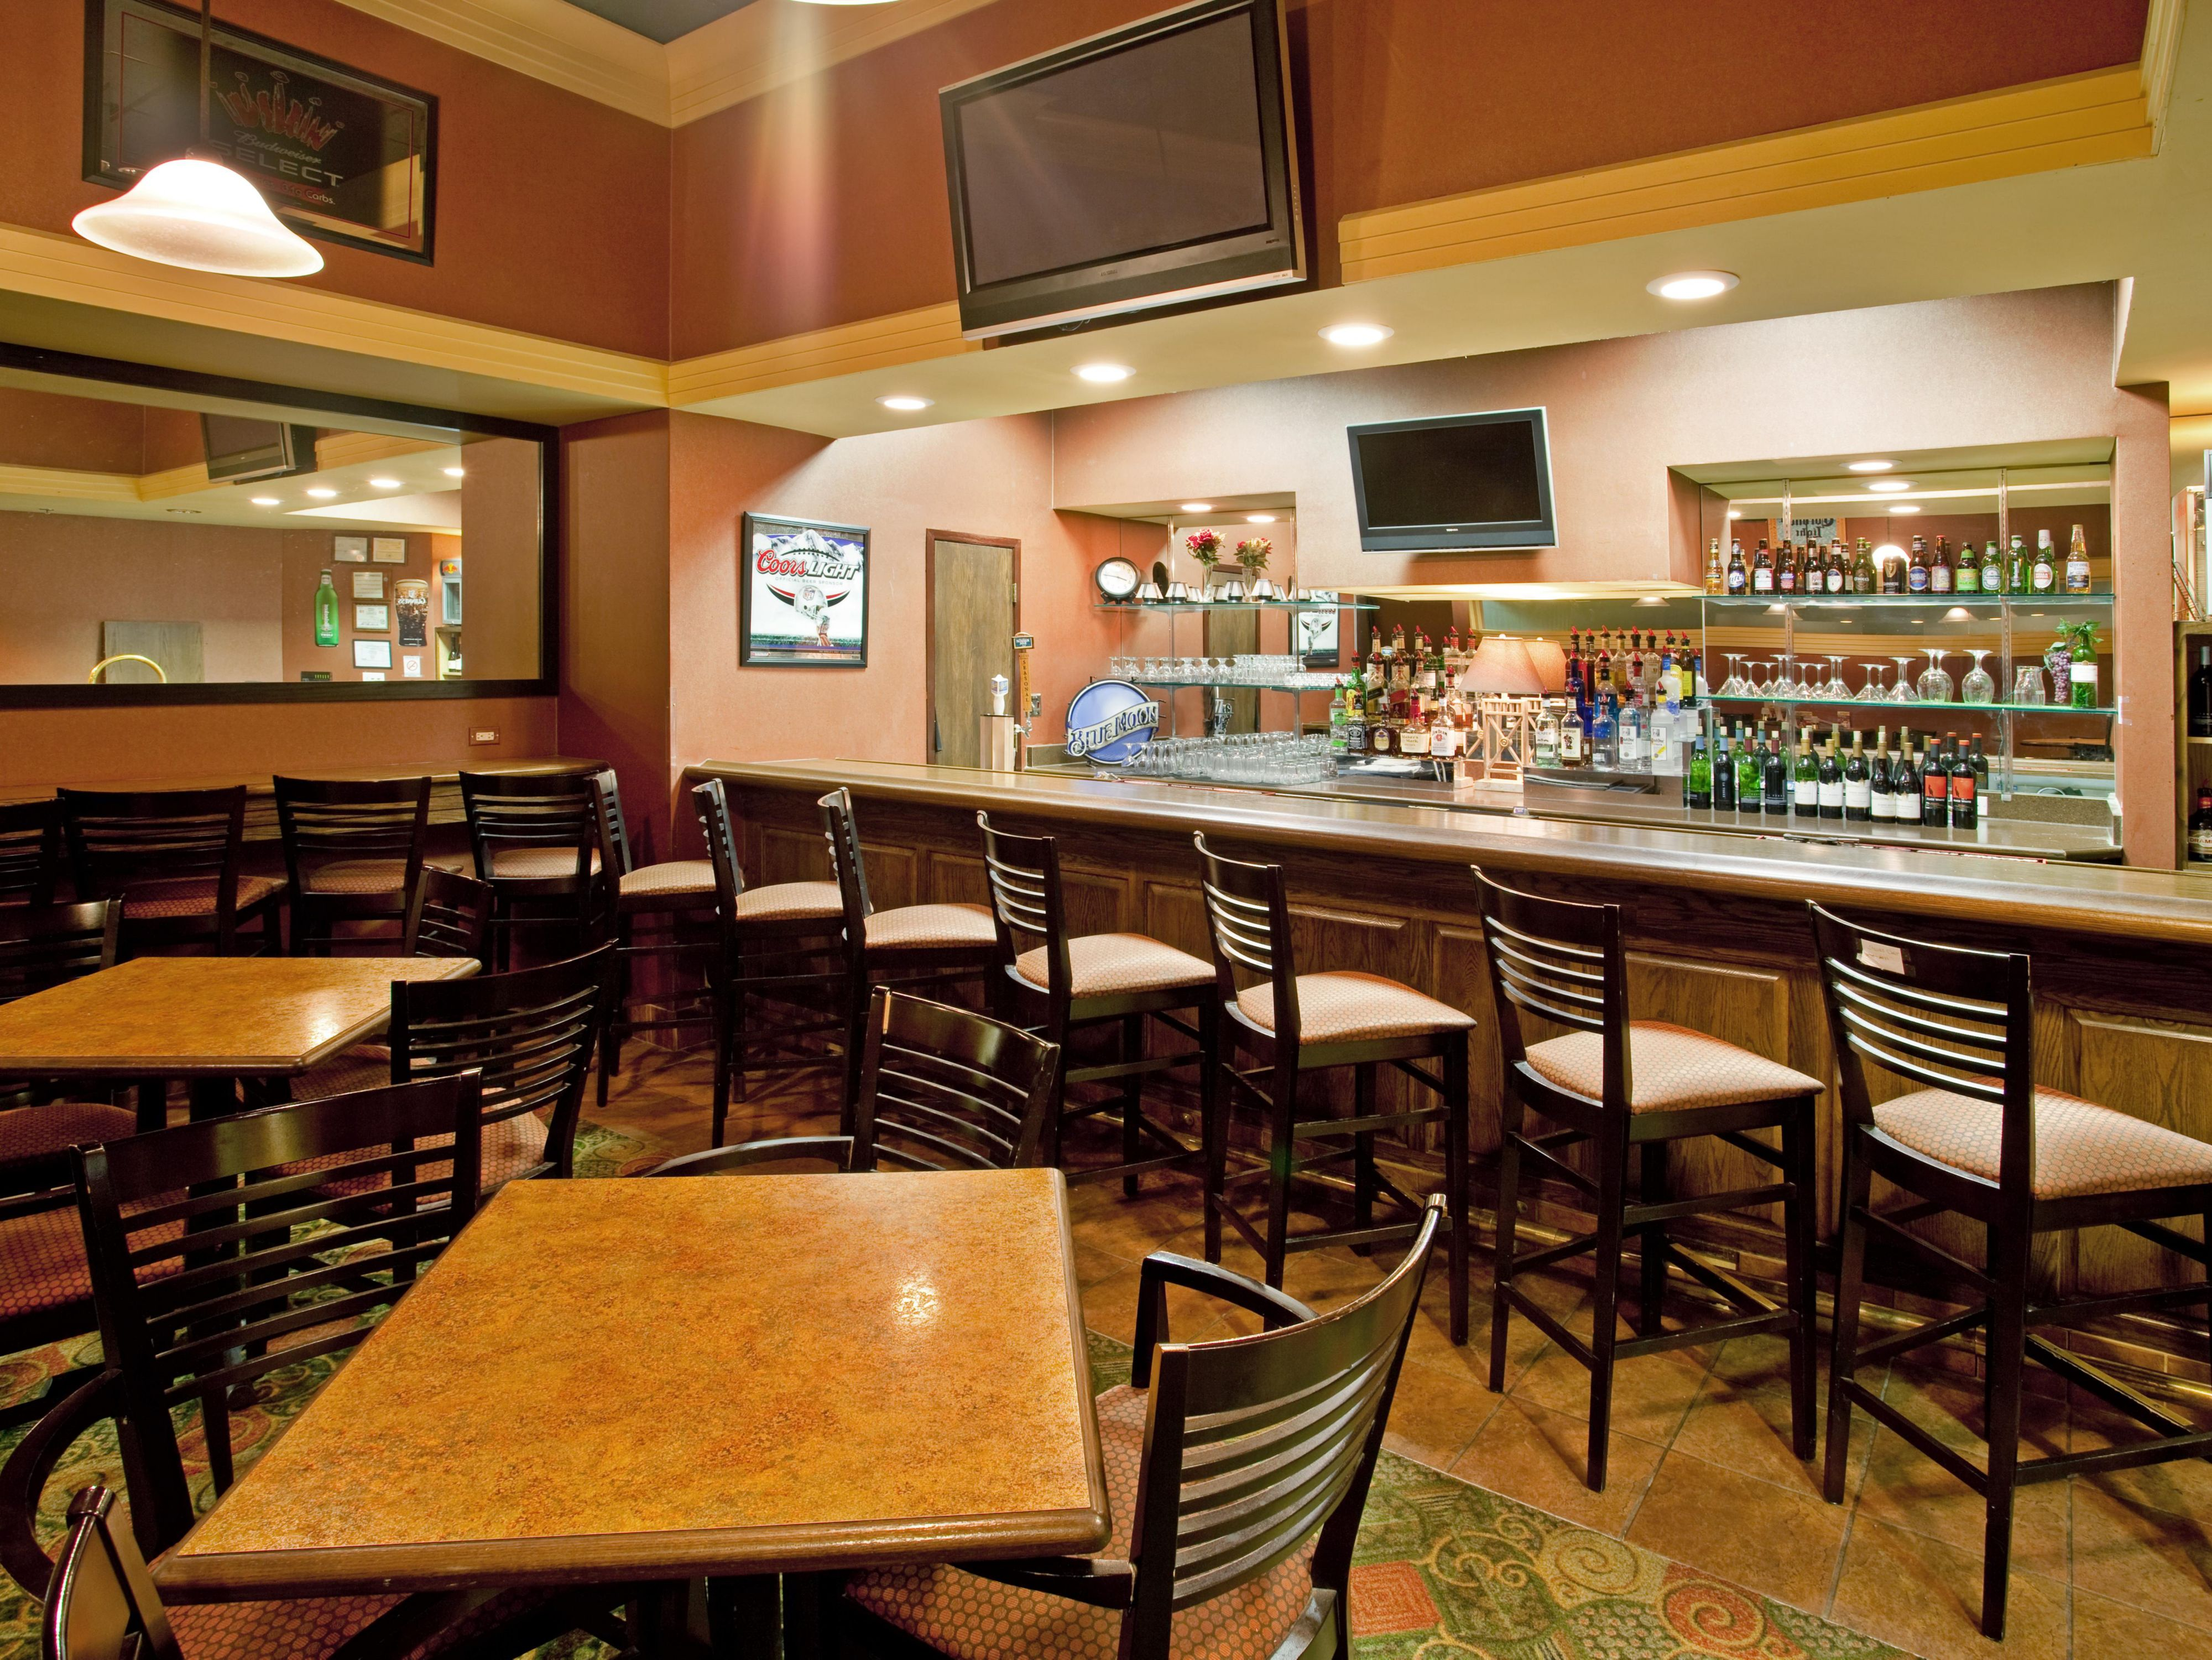 Hotel Bar at Holiday Inn Hotel & Suites Bolingbrook, Illinois